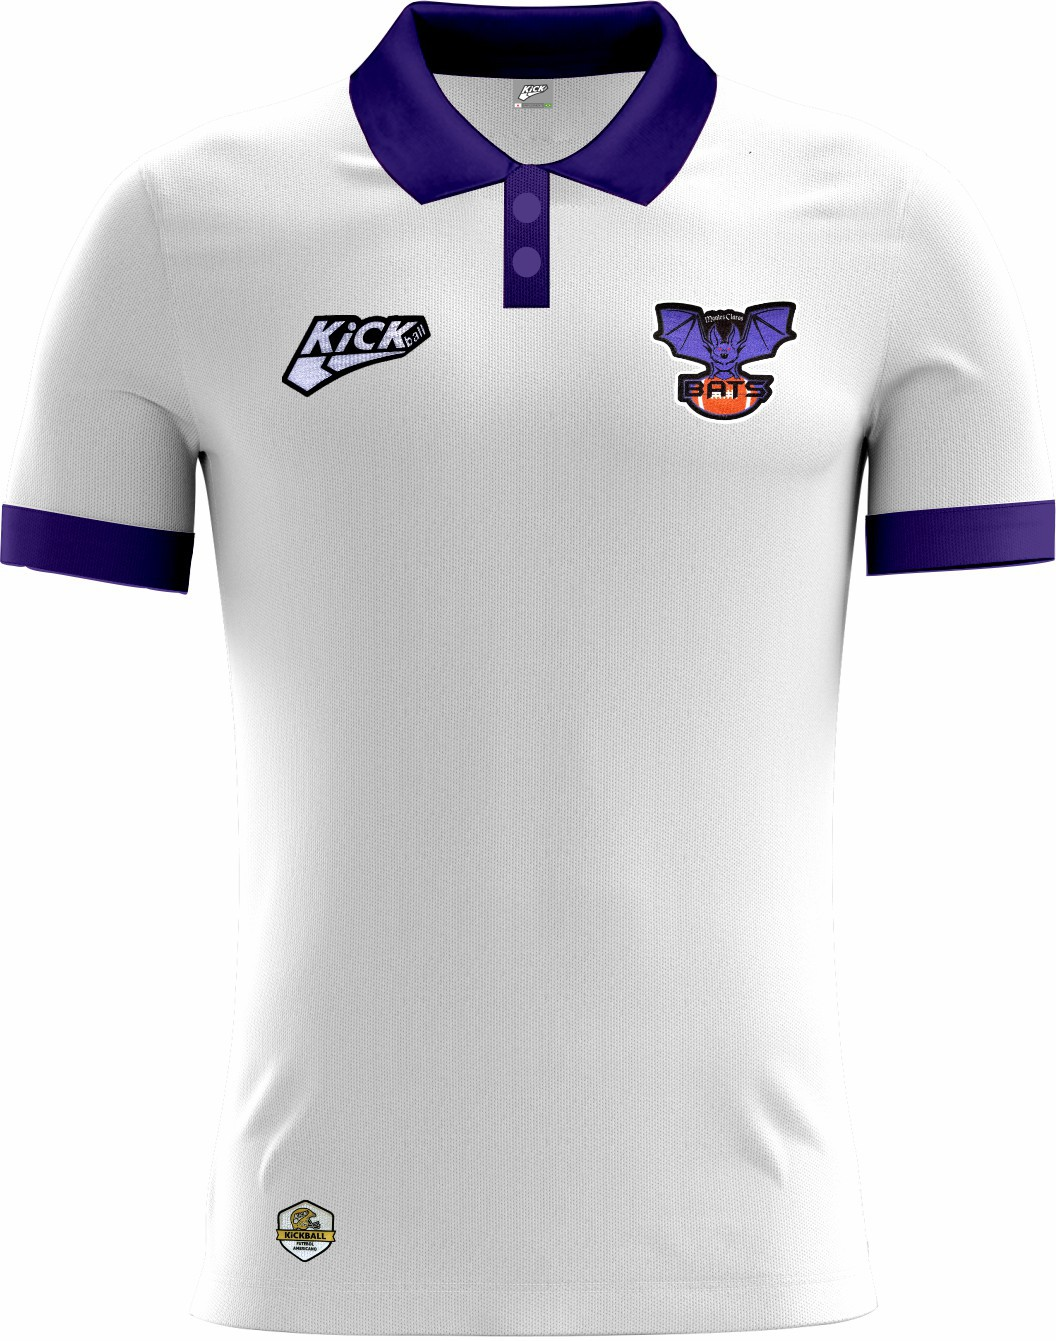 Camisa Of. Montes Claros Bats Tryout Polo Masc. Mod2